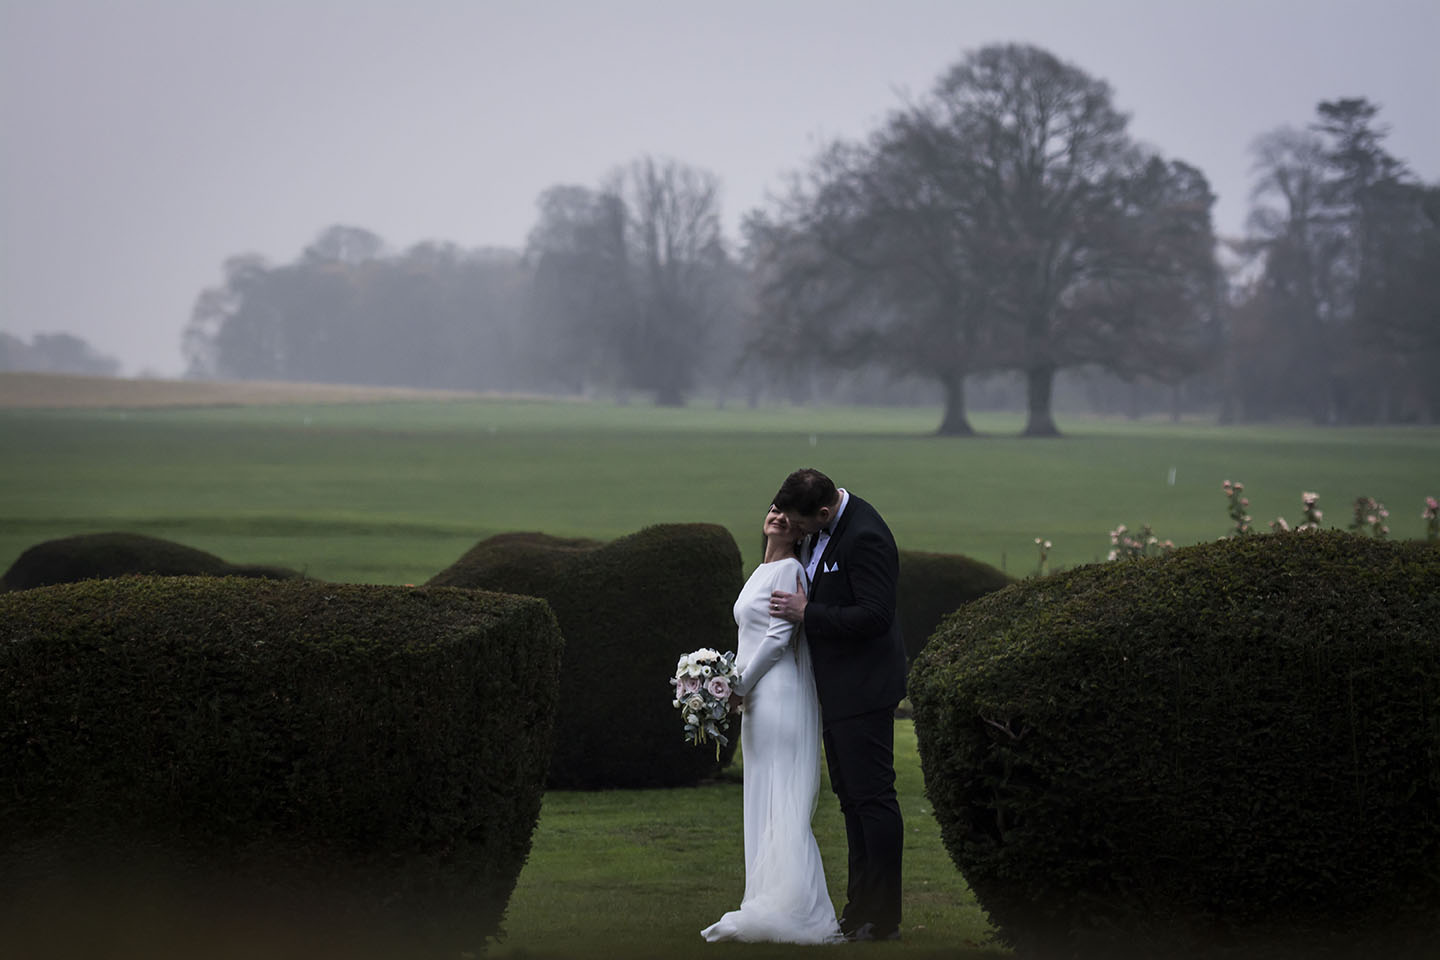 irish wedding photographer Carton House Kildare IJ2019 40 - Gallery